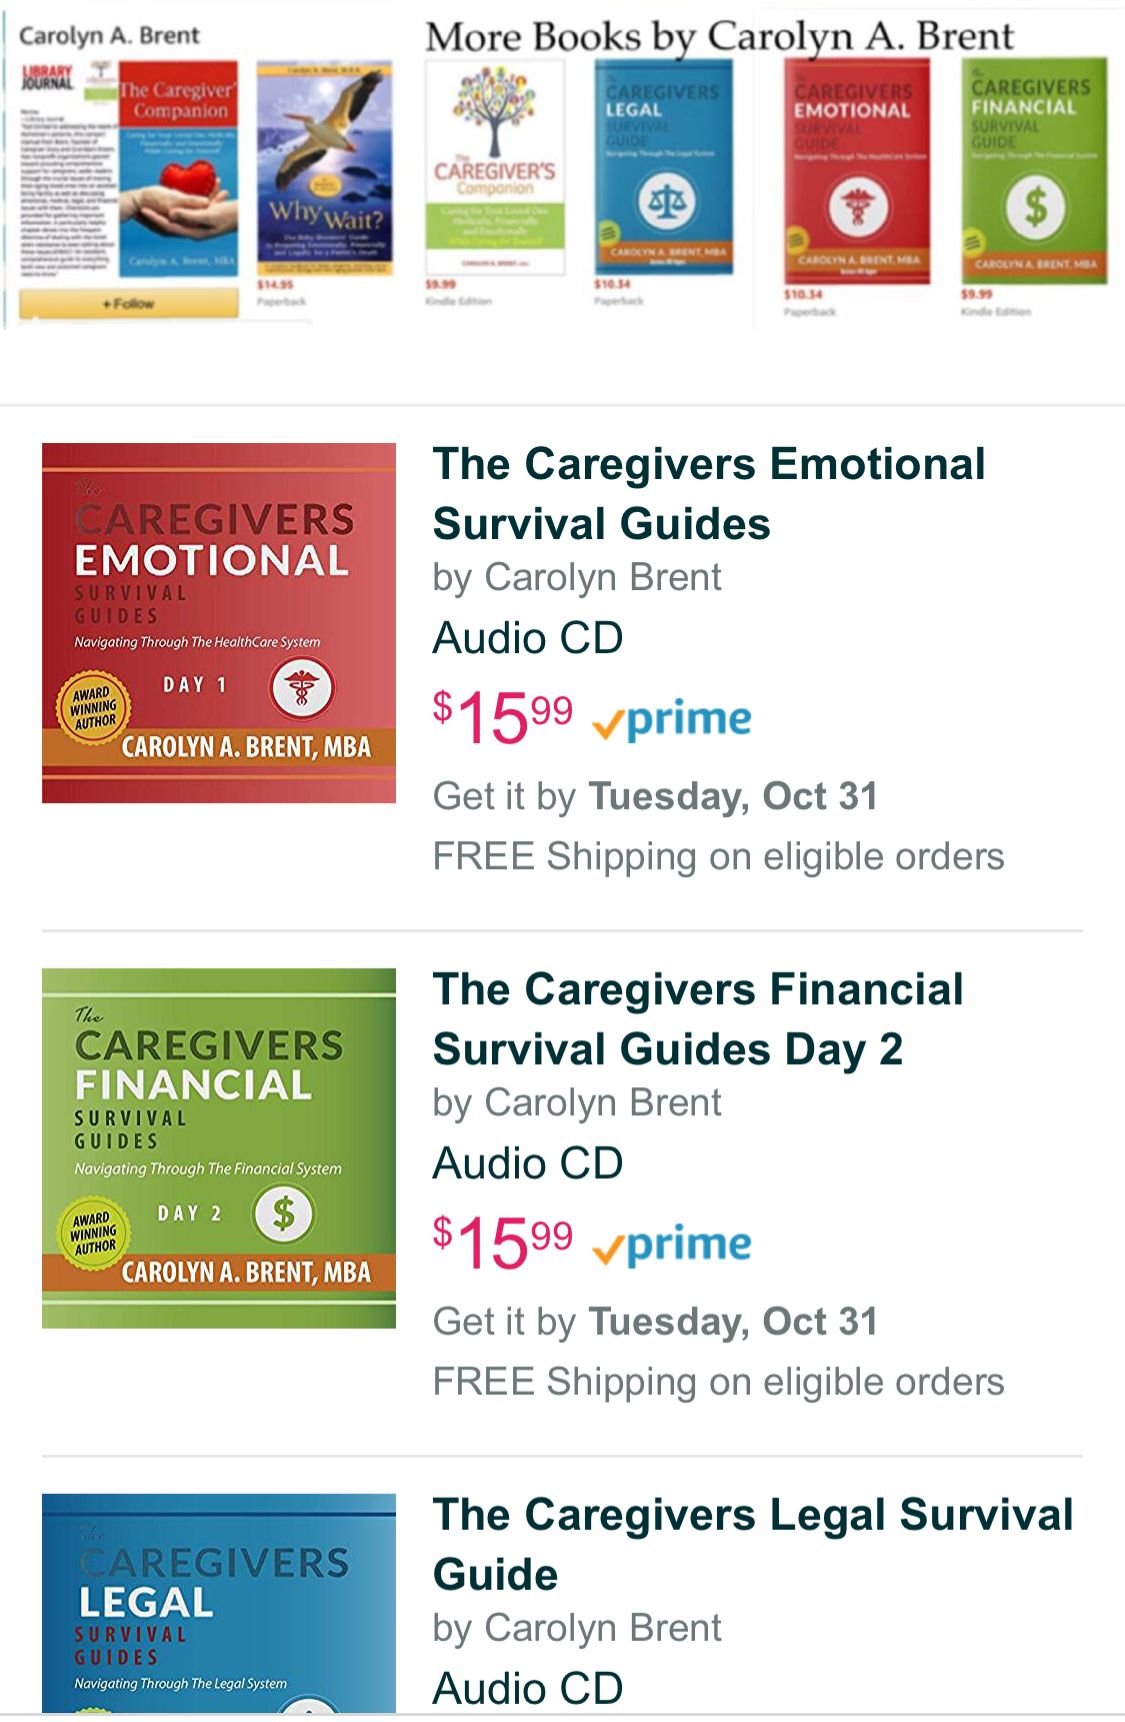 Thank You To Our Global Partners At University Learning Institutions Public Libraries Both National And International For Caregiver Award Winning Books Books